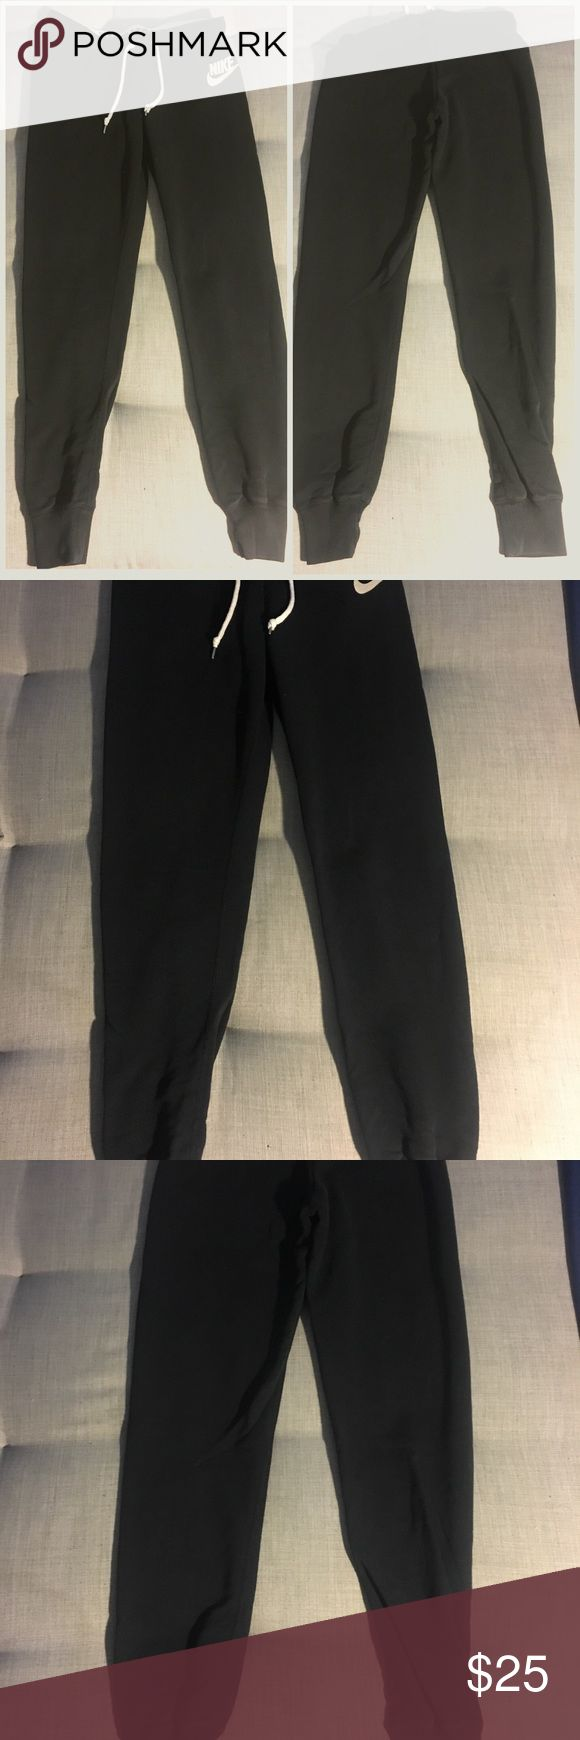 Nike Slim Fit Black Joggers Nike Slim Fit Black Joggers. Accentuates the backside. Great for lounging around or running errands. Nike Pants Track Pants & Joggers